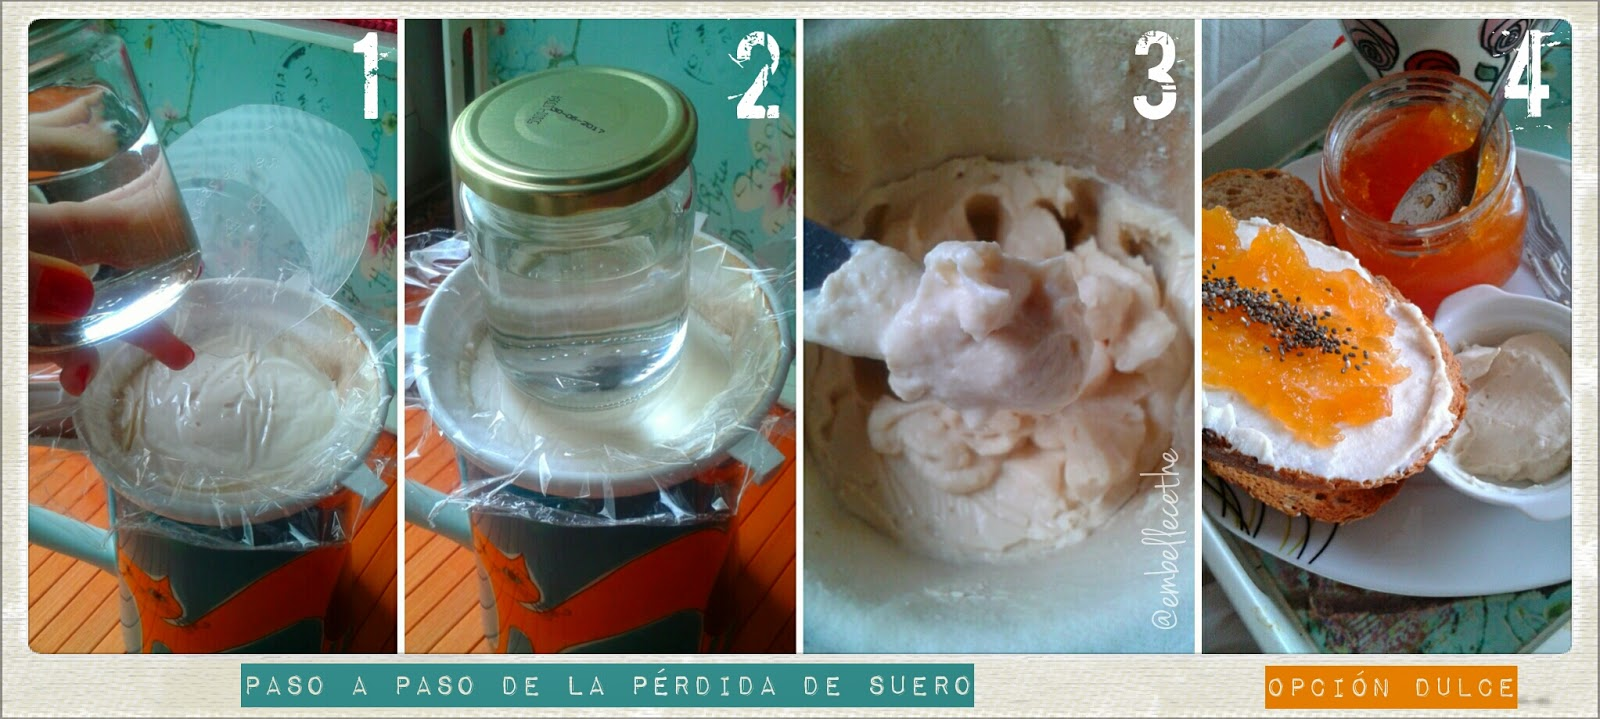 #vegano #vegan #veganism #quesovegano #quesodeuntar #quesodesoja #diy